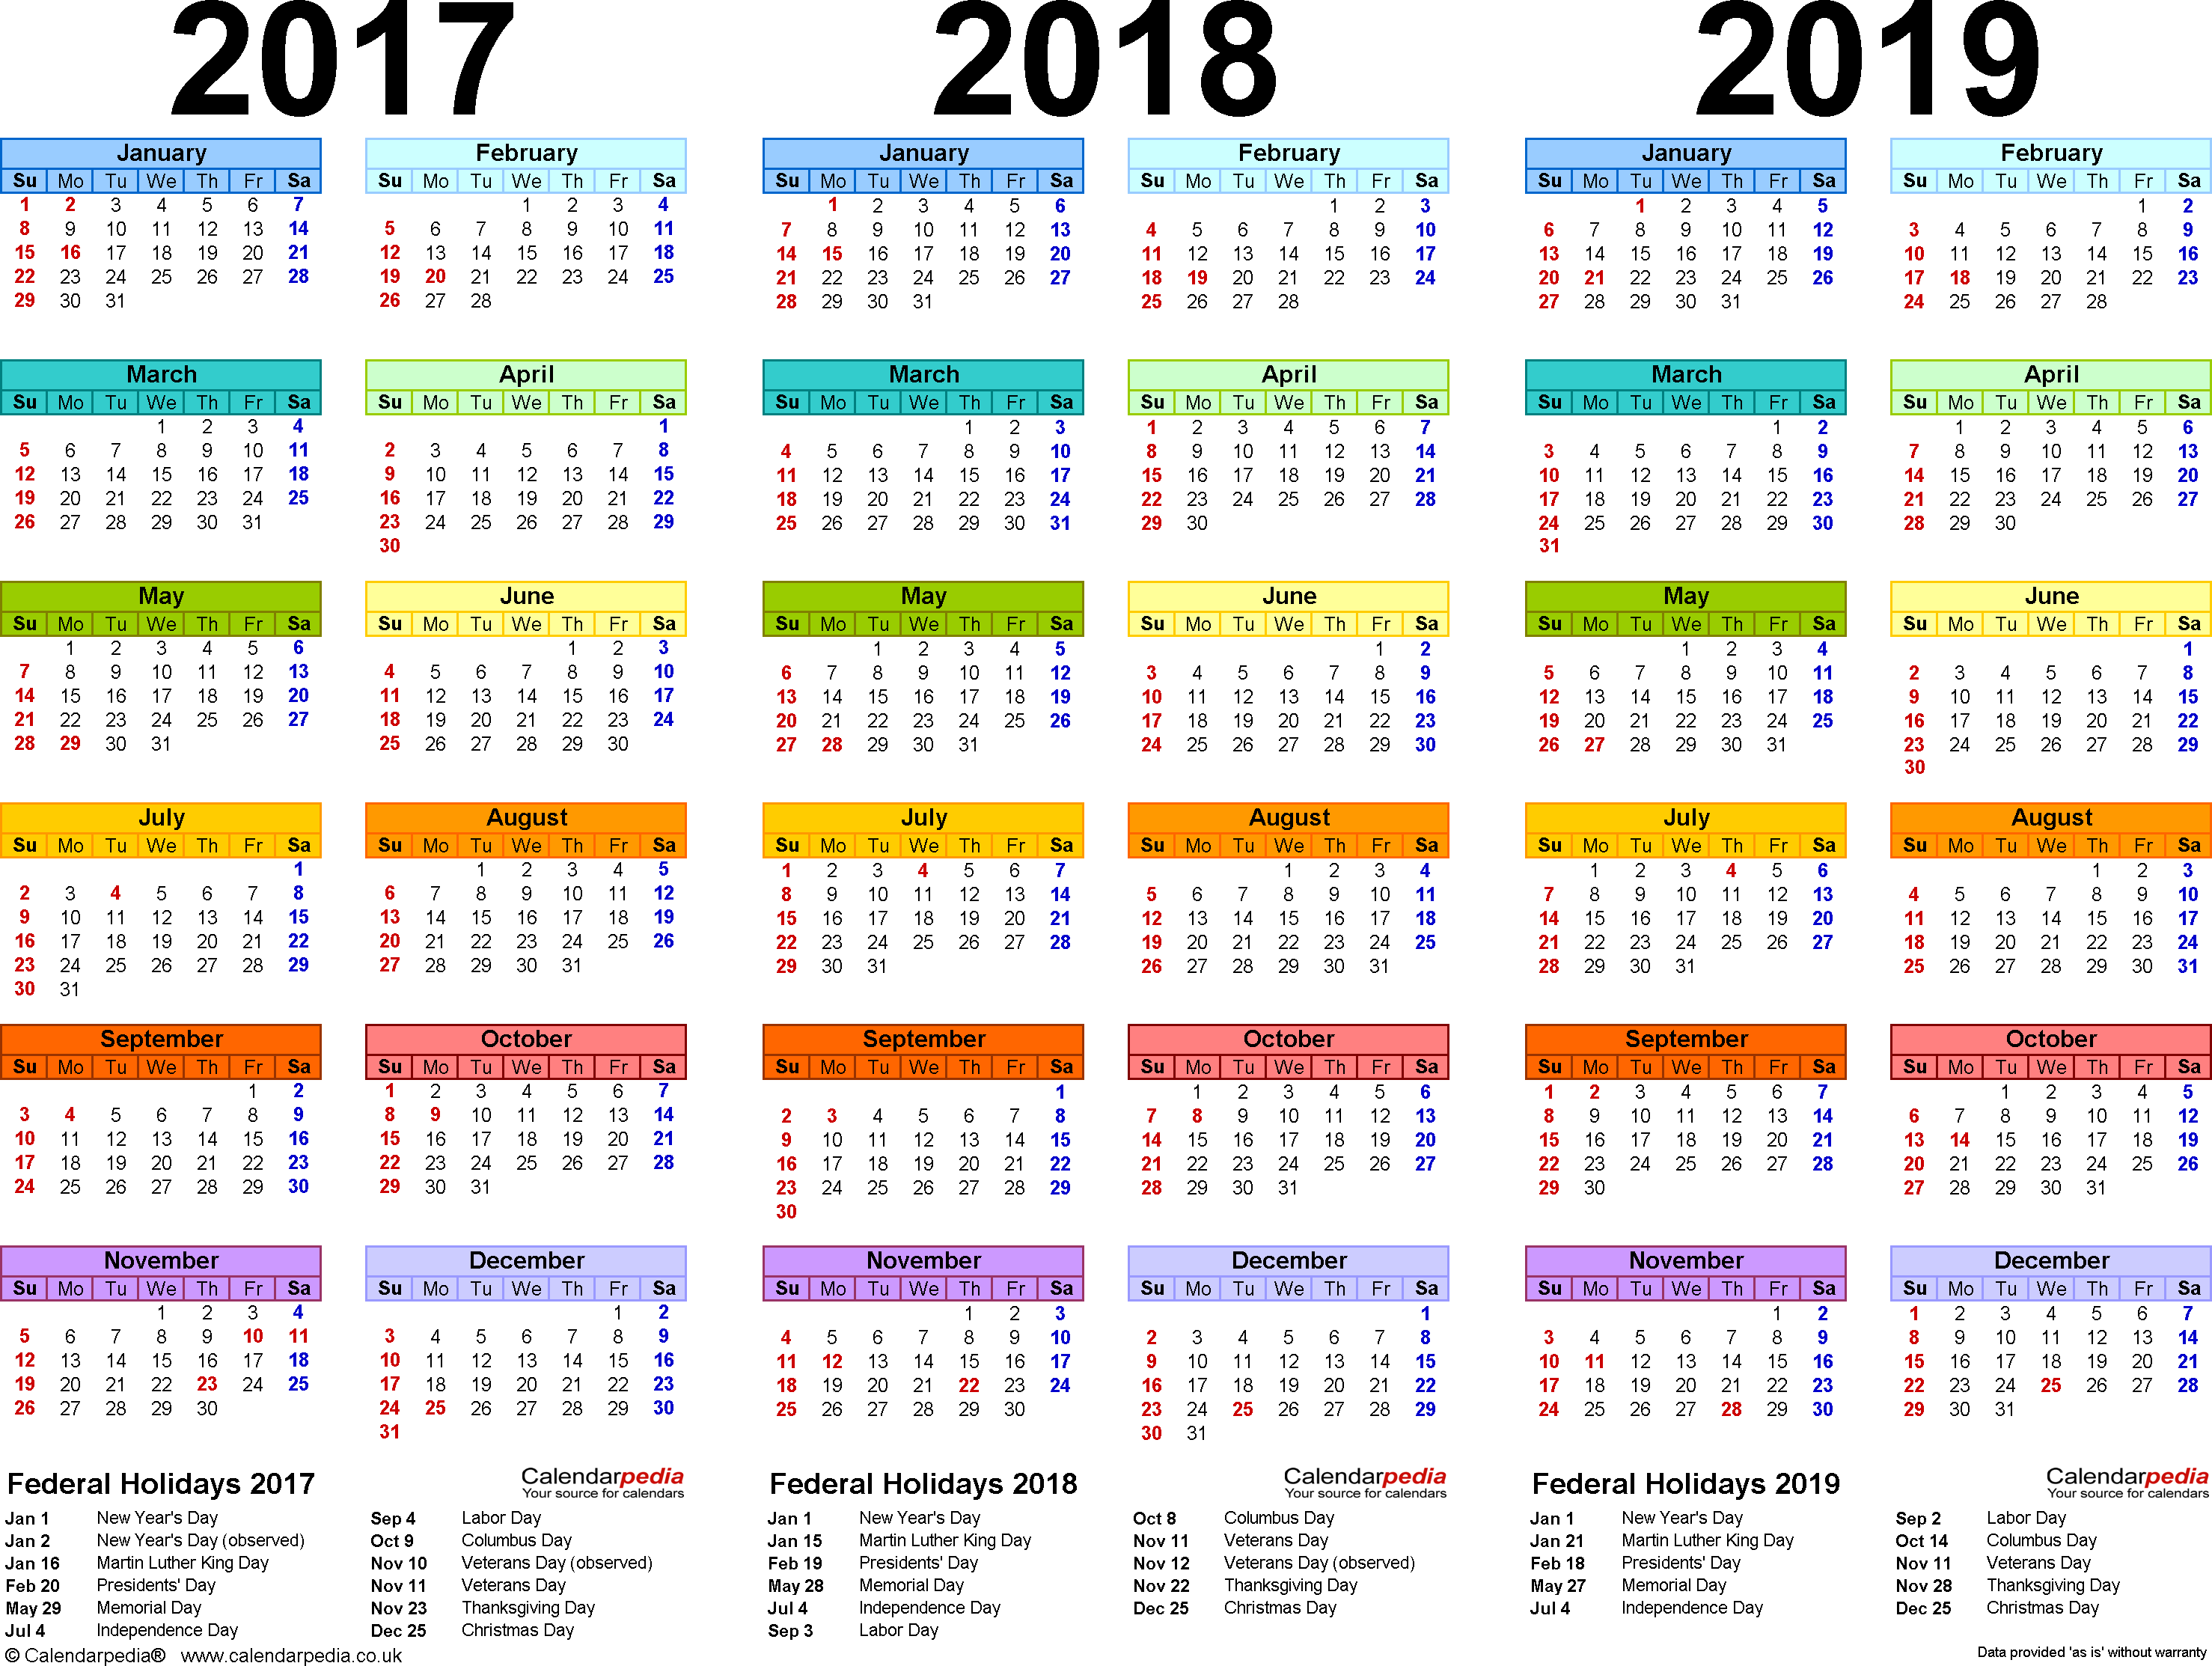 Download Template 1: Microsoft Excel template for three year calendar 2017-2019 (landscape orientation, 1 page, in color)